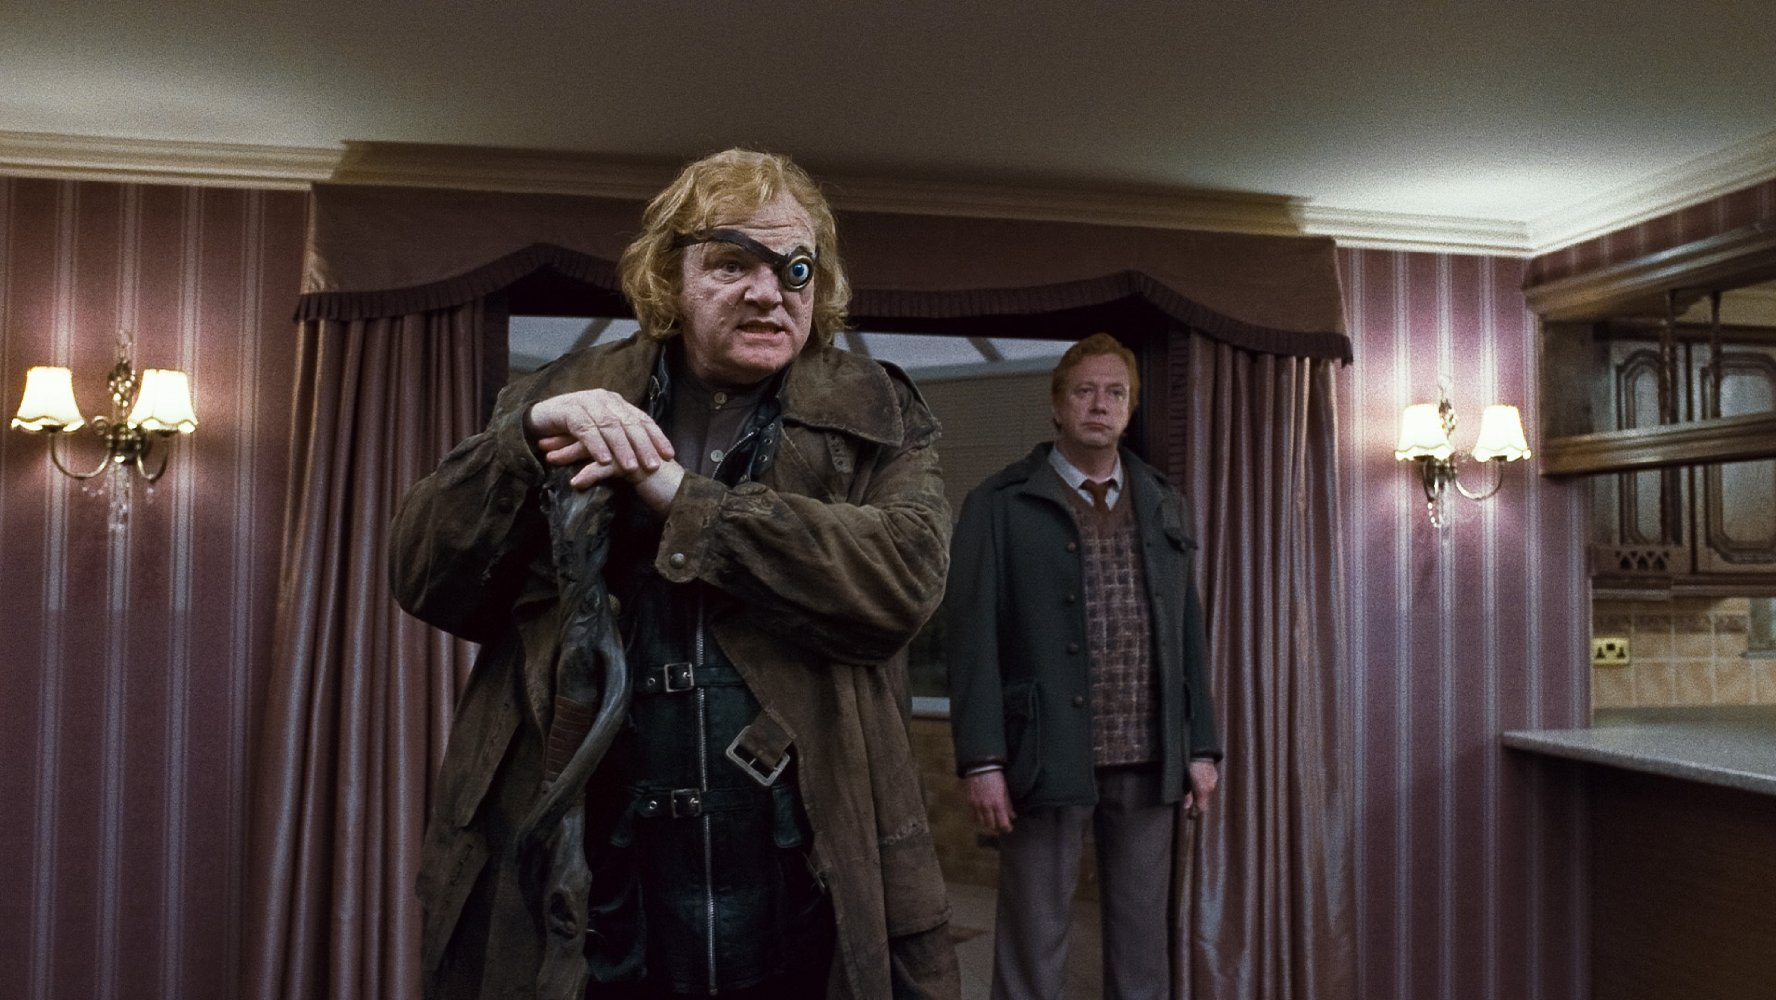 Harry Potter And The Deathly Hallows Part 1 2010 Watch In Hd For